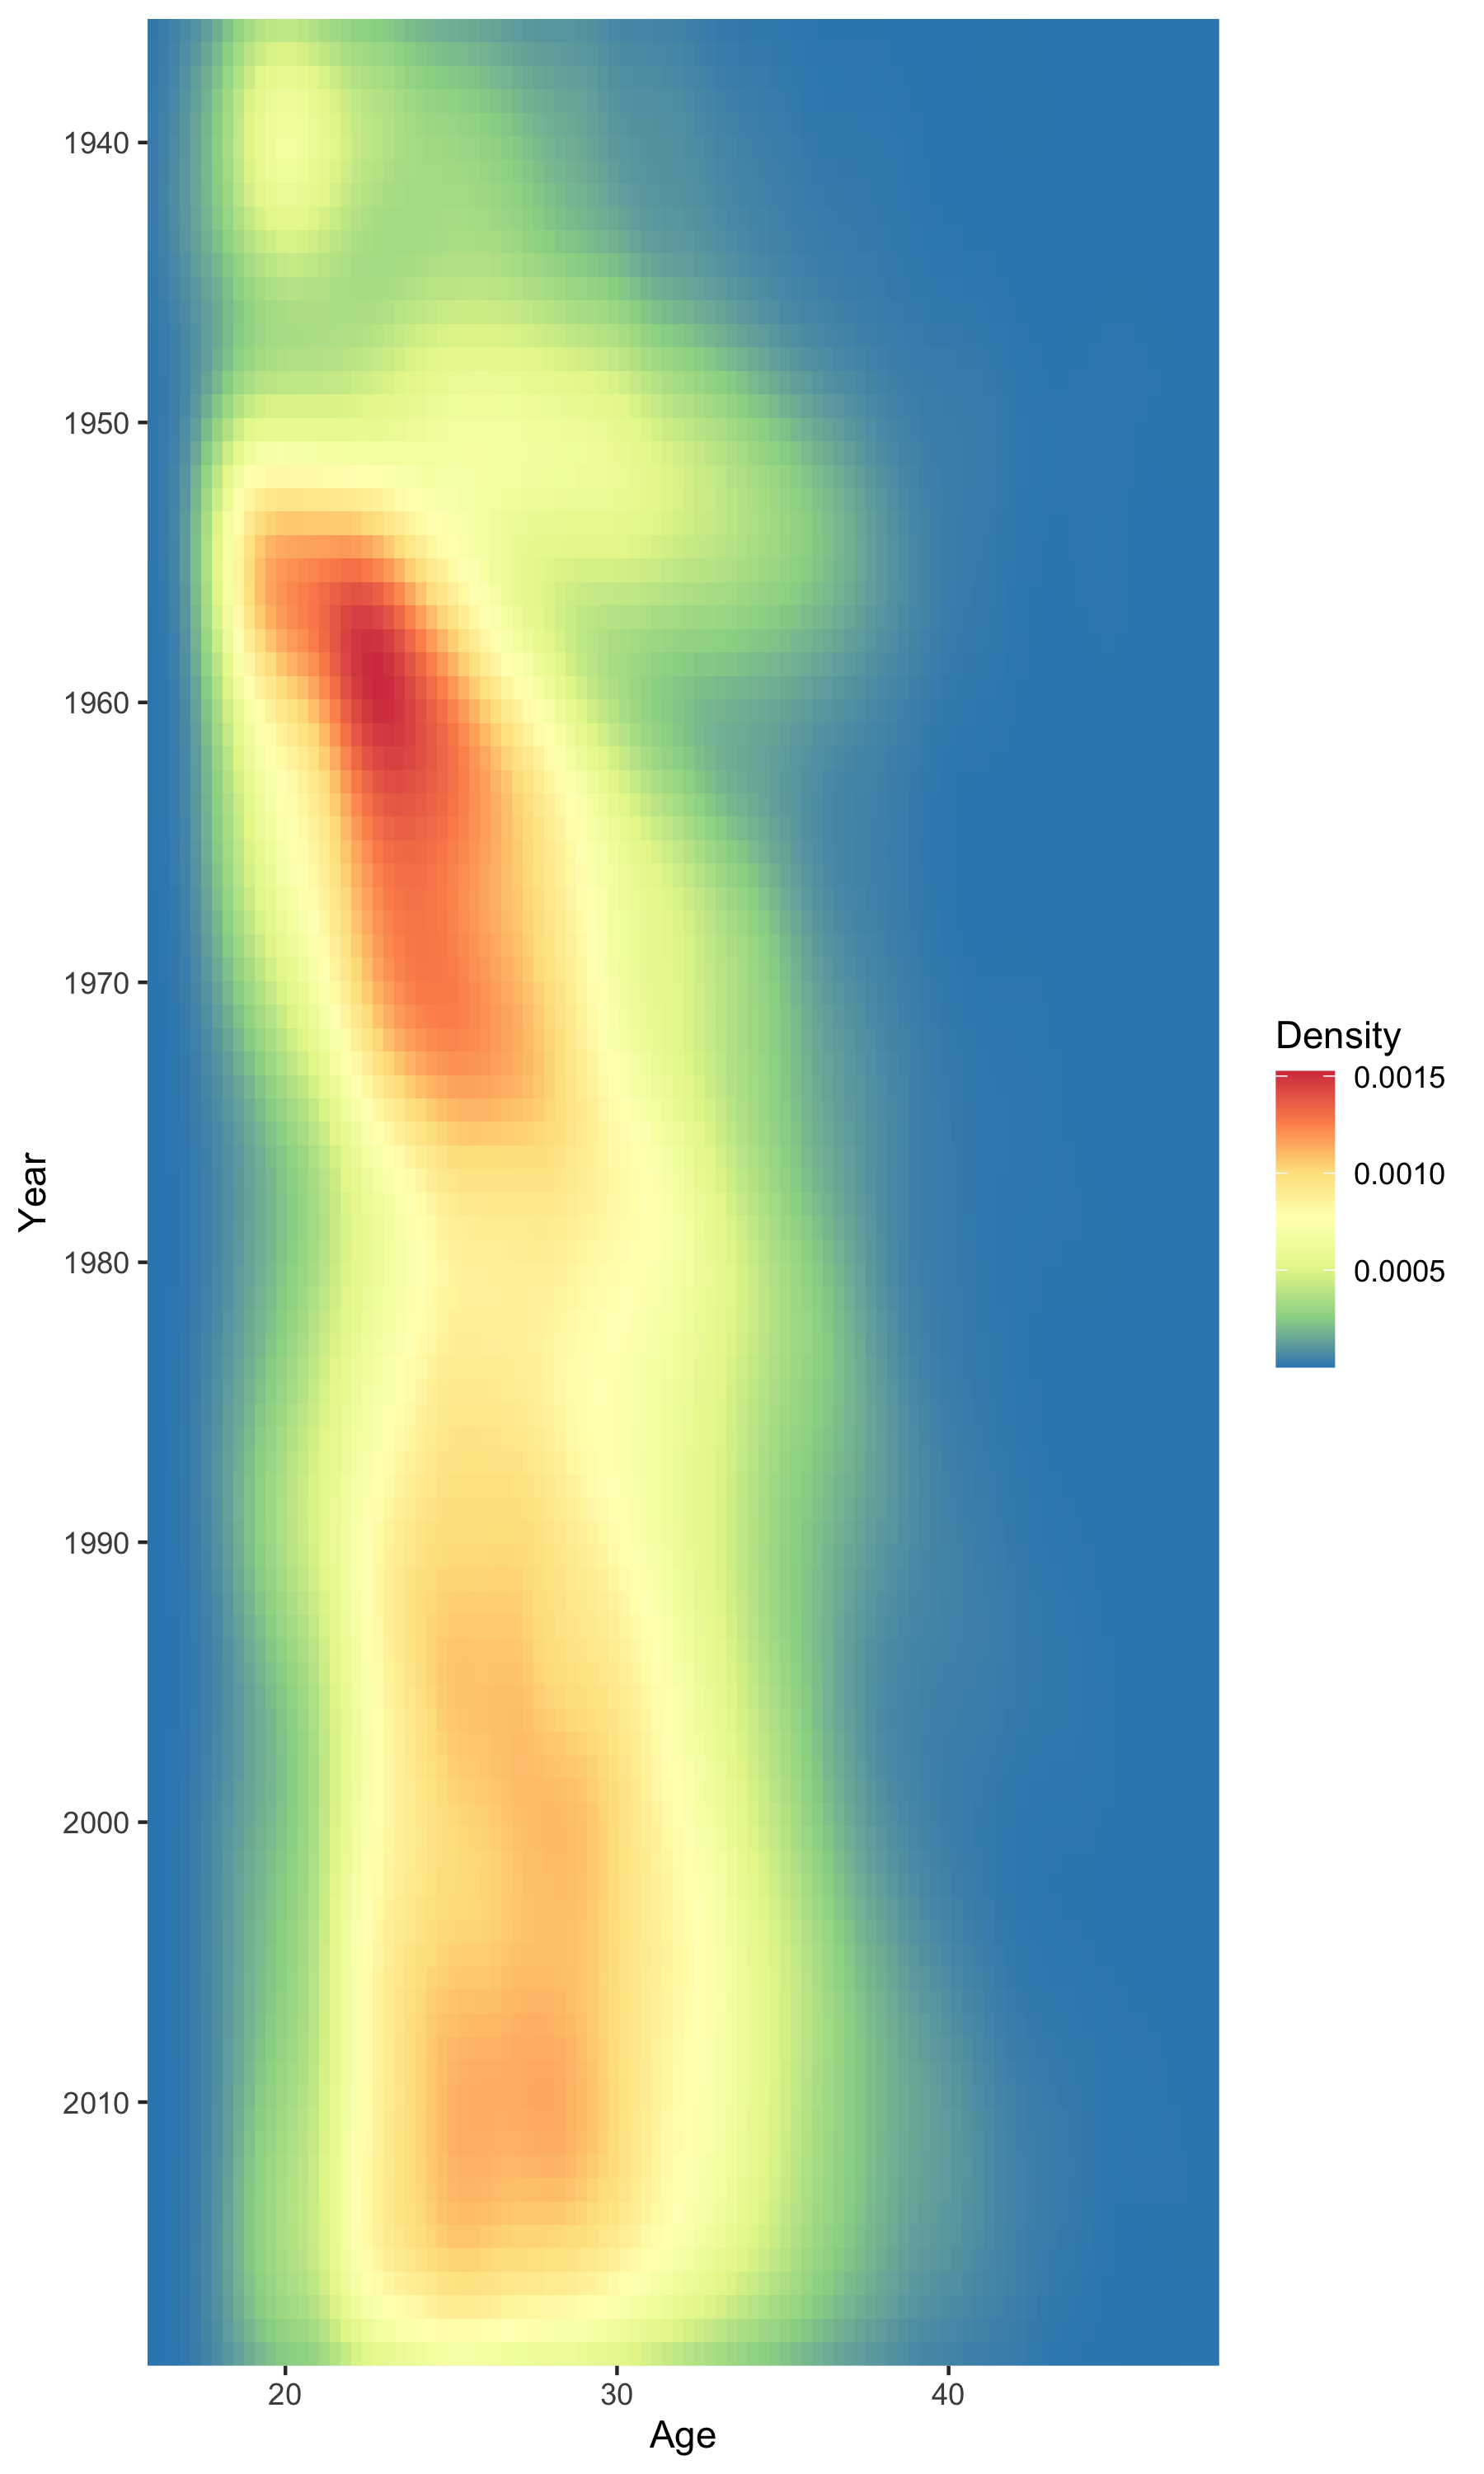 plot of chunk fig_density_2d_plot_Age_Year